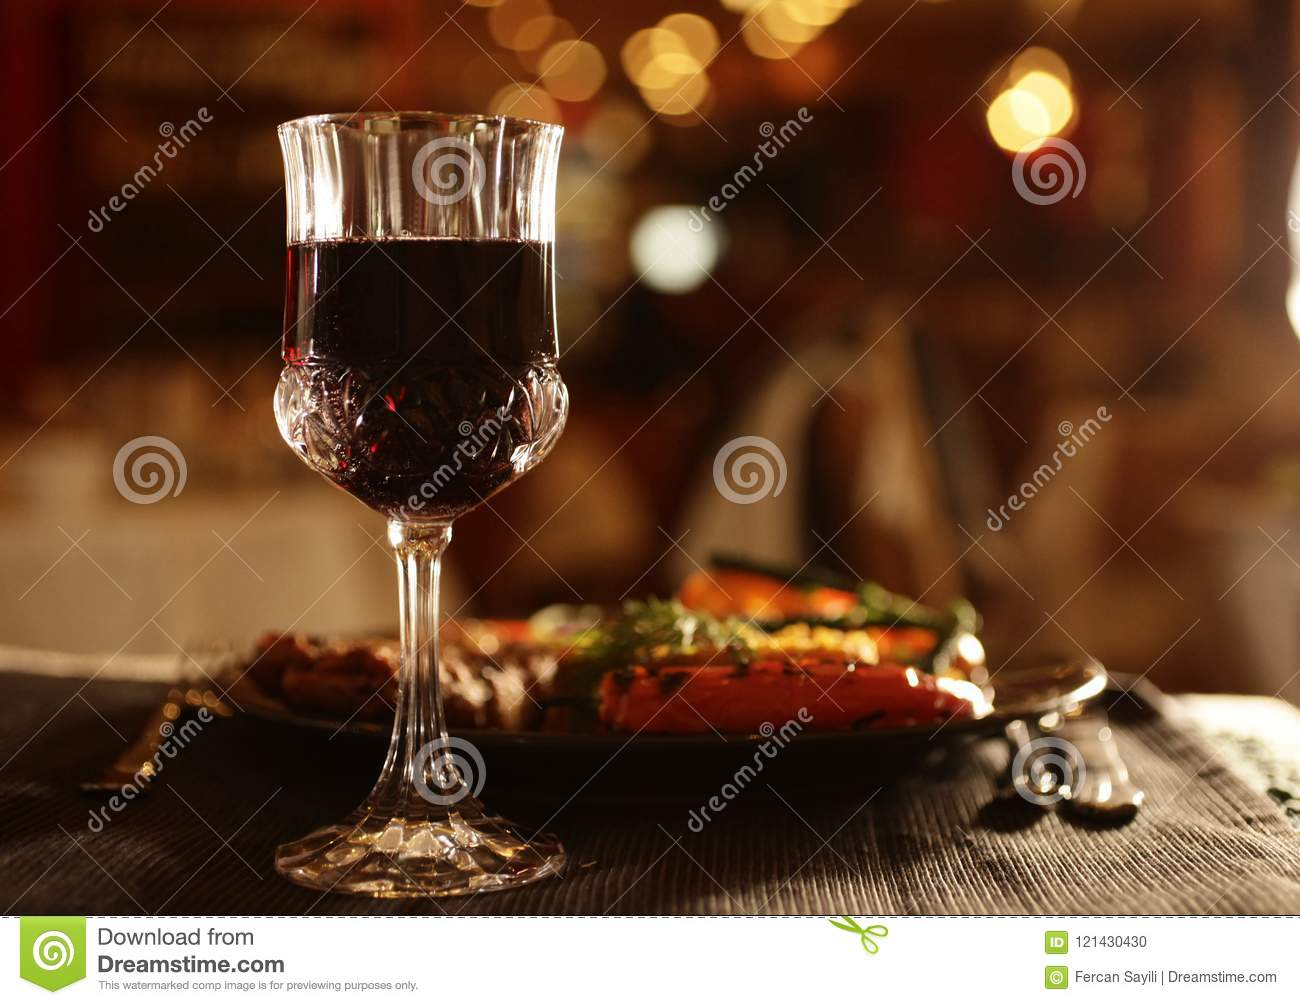 Glass of wine and dinner beside